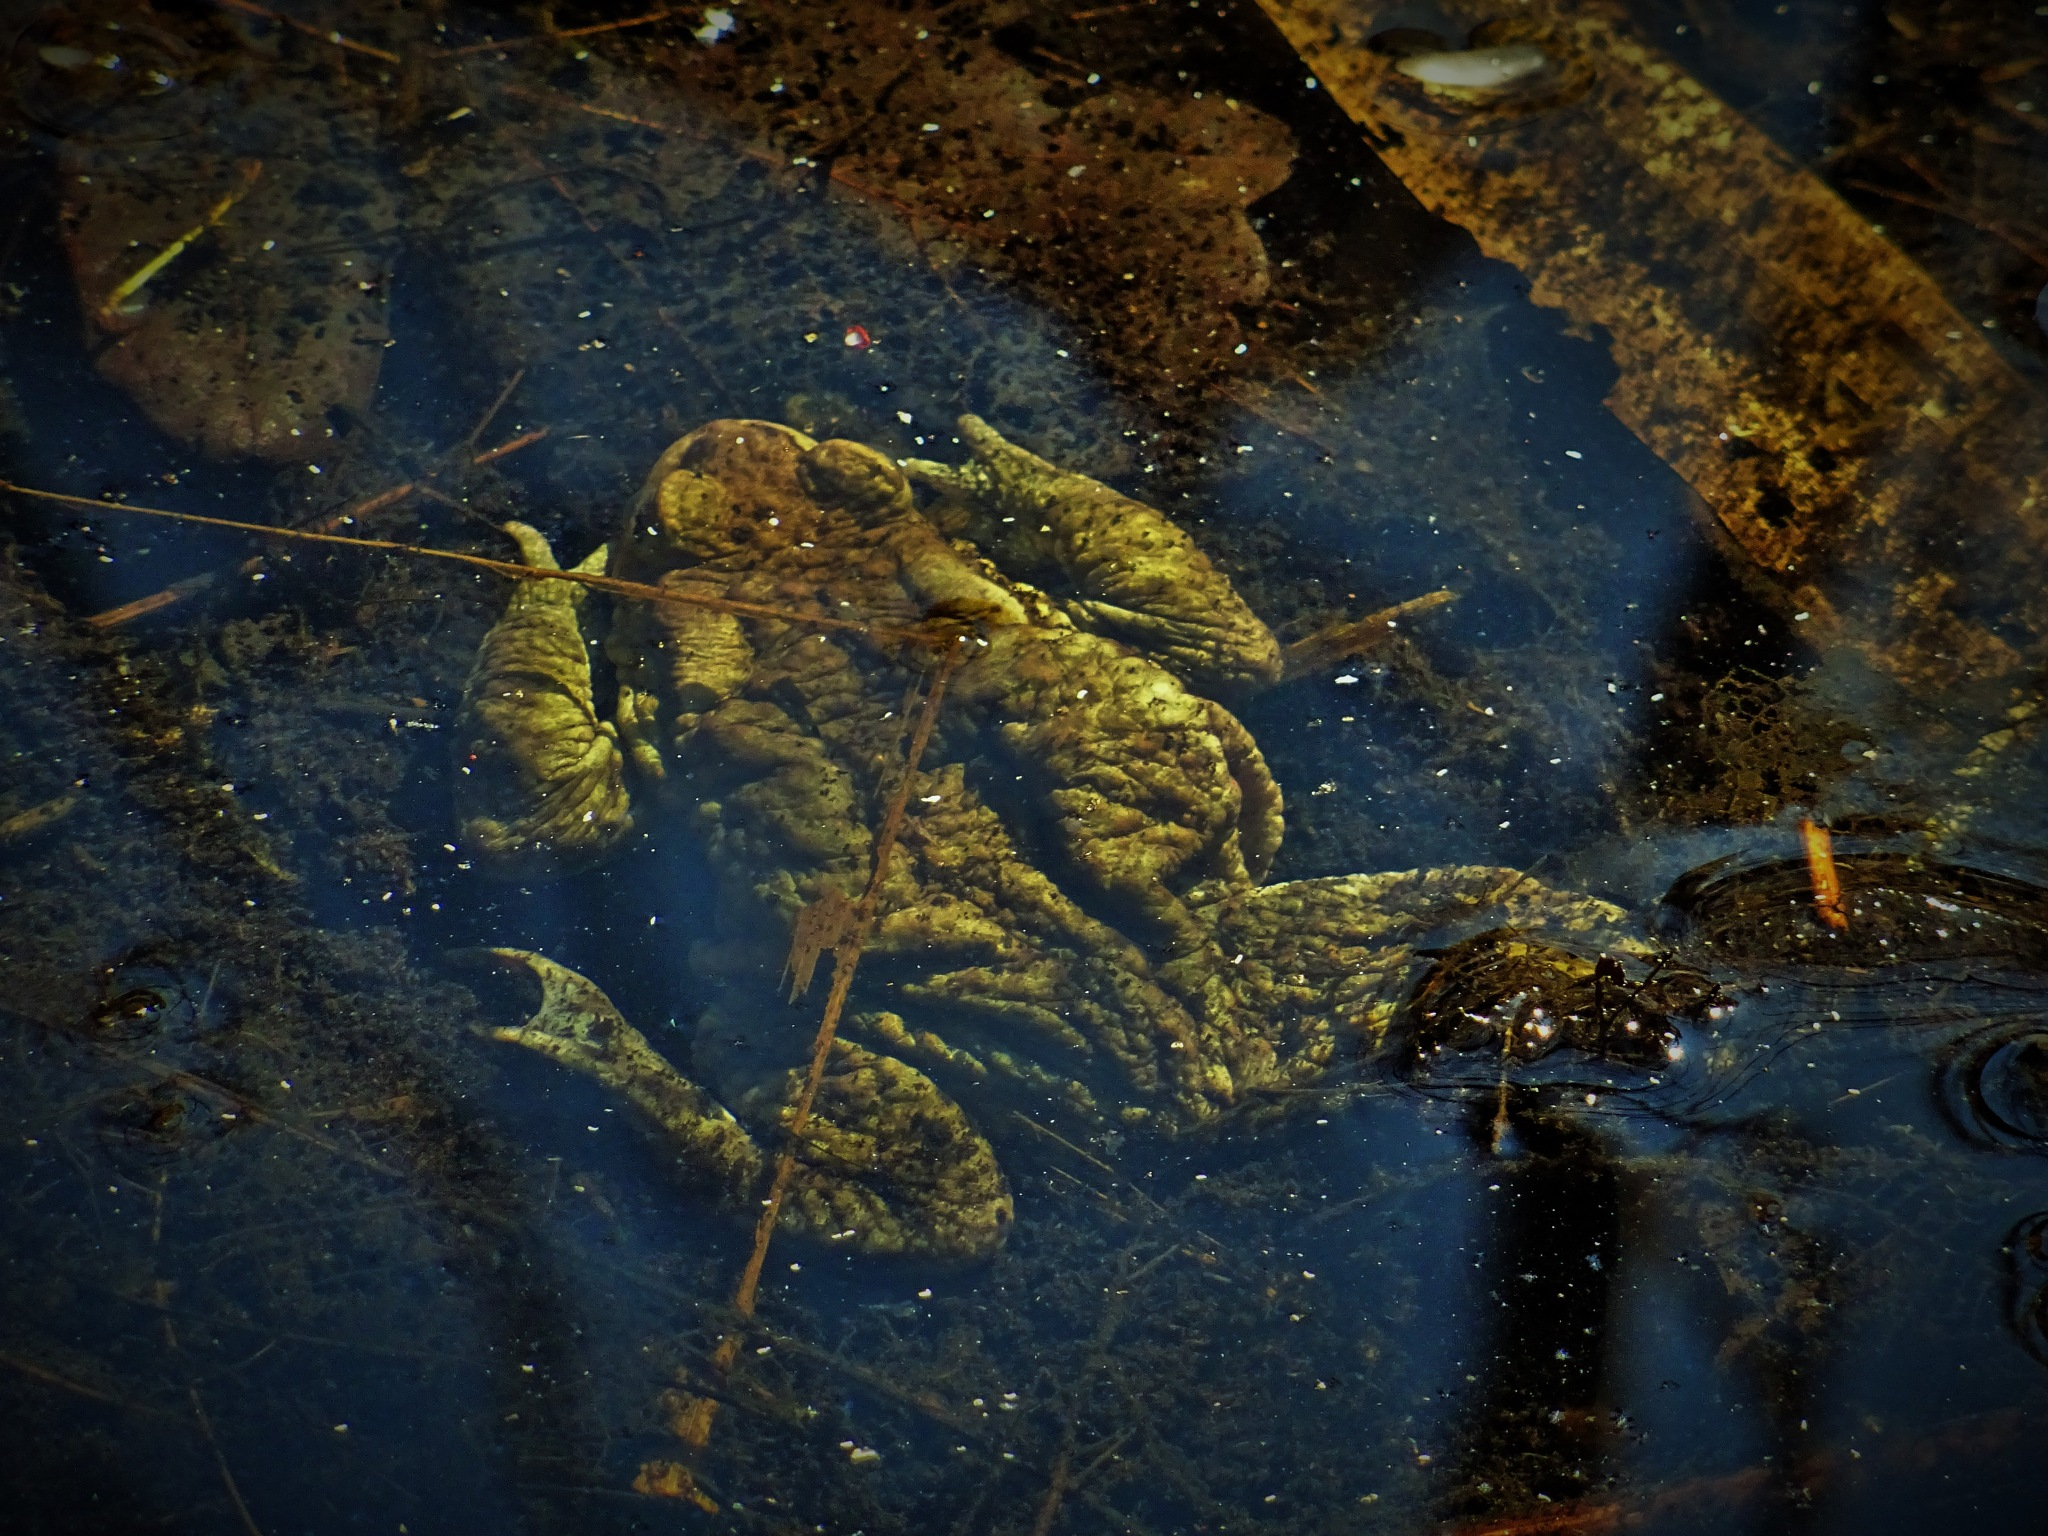 A toad under the water. by vita.tucaite